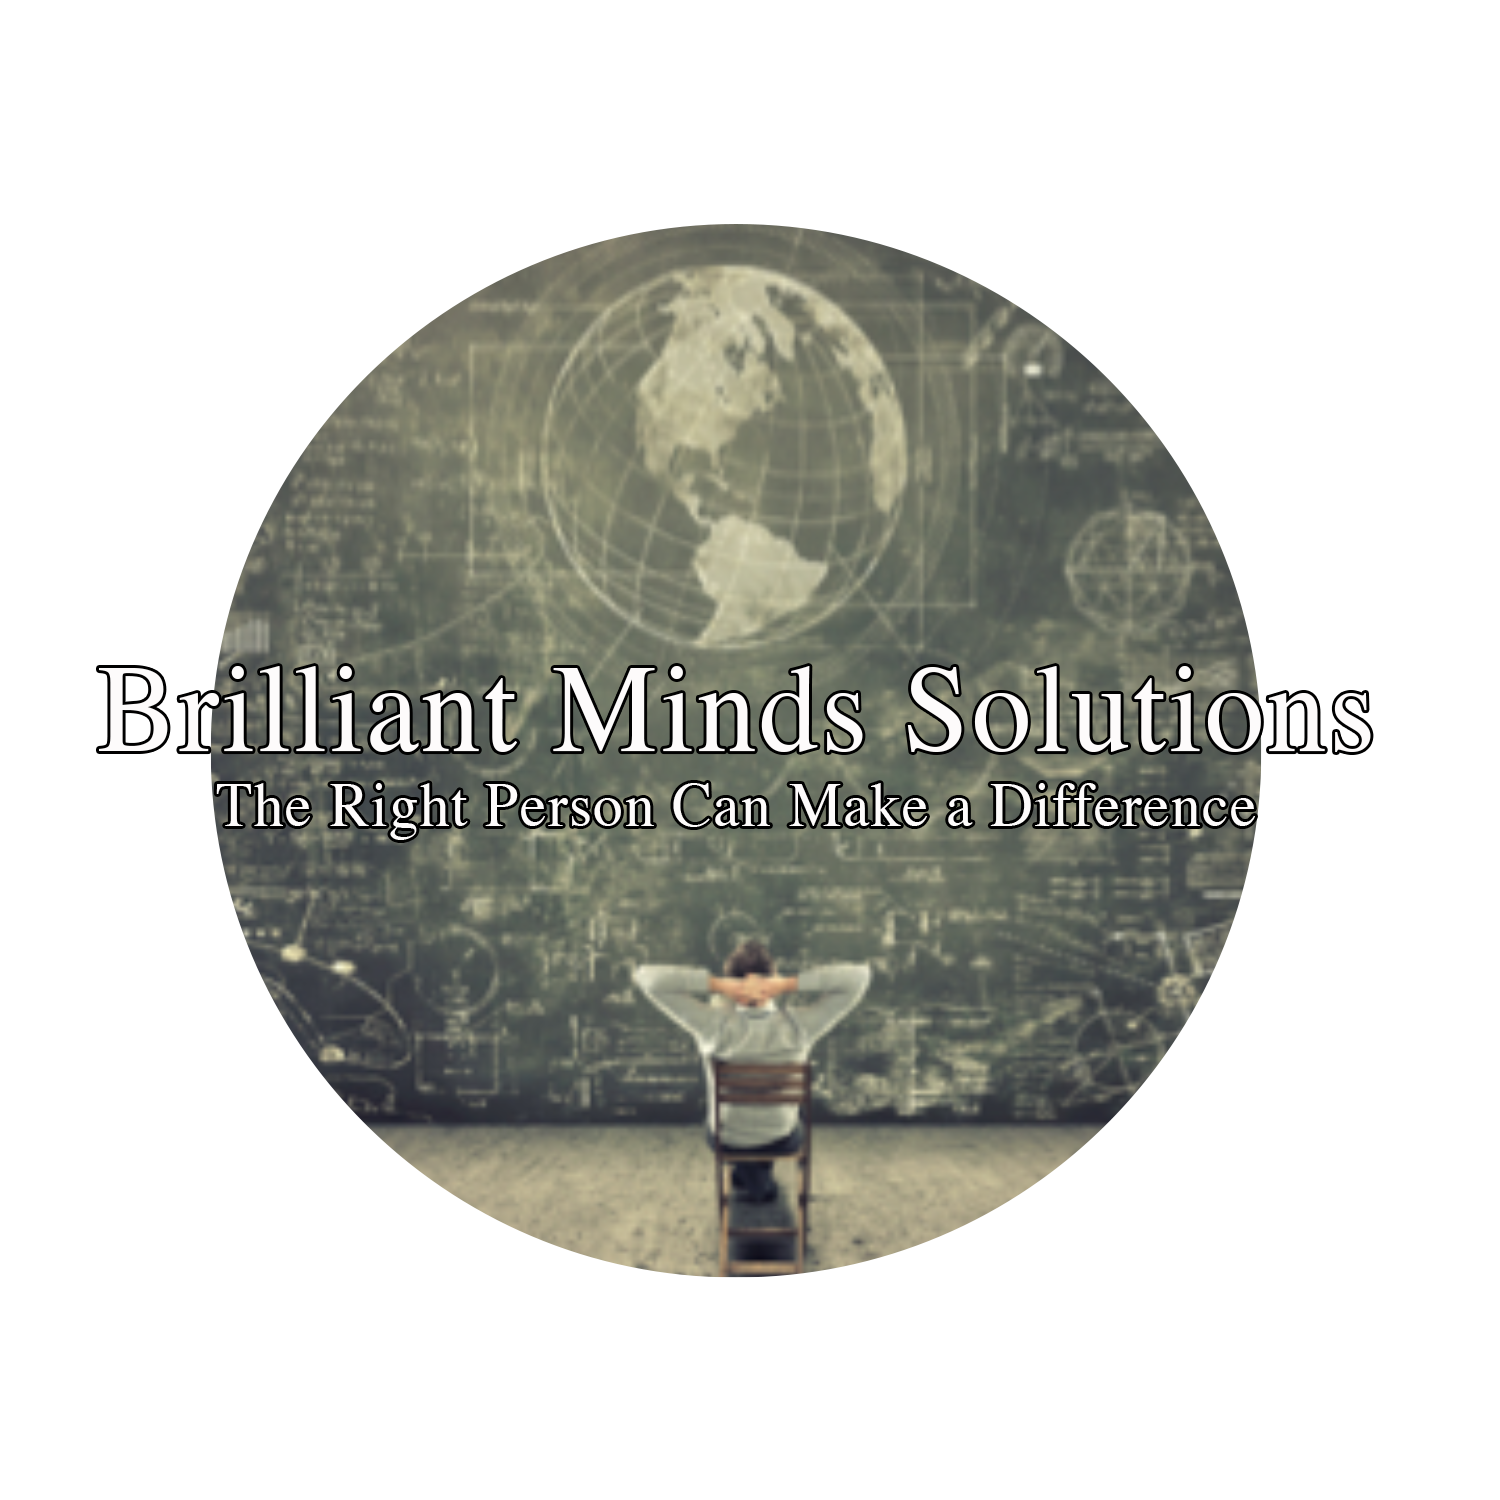 Brilliant Minds Solutions